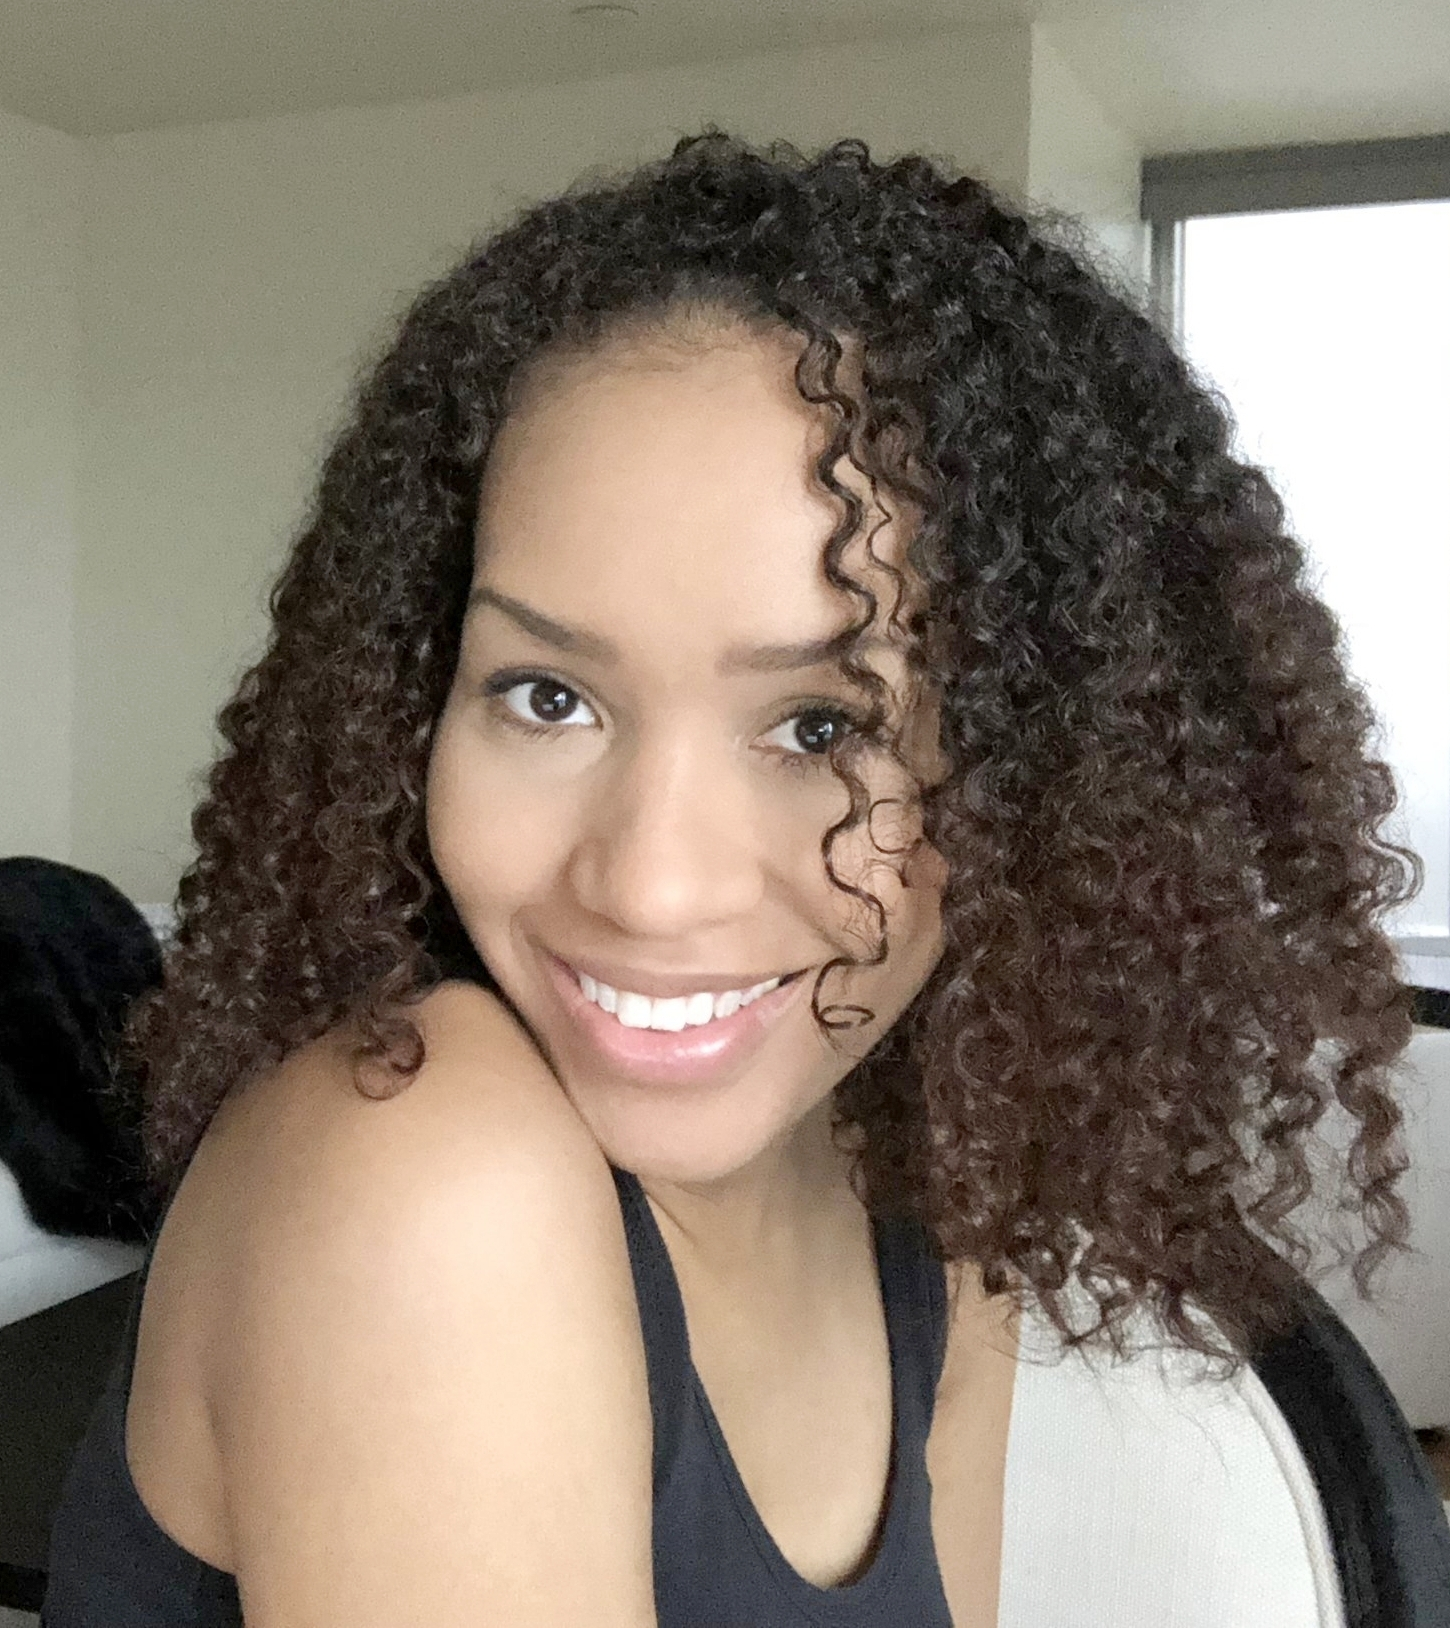 DEVA CUT  MY FIRST DEVA CUT AND SHOULD YOU GET ONE? — Gleamy